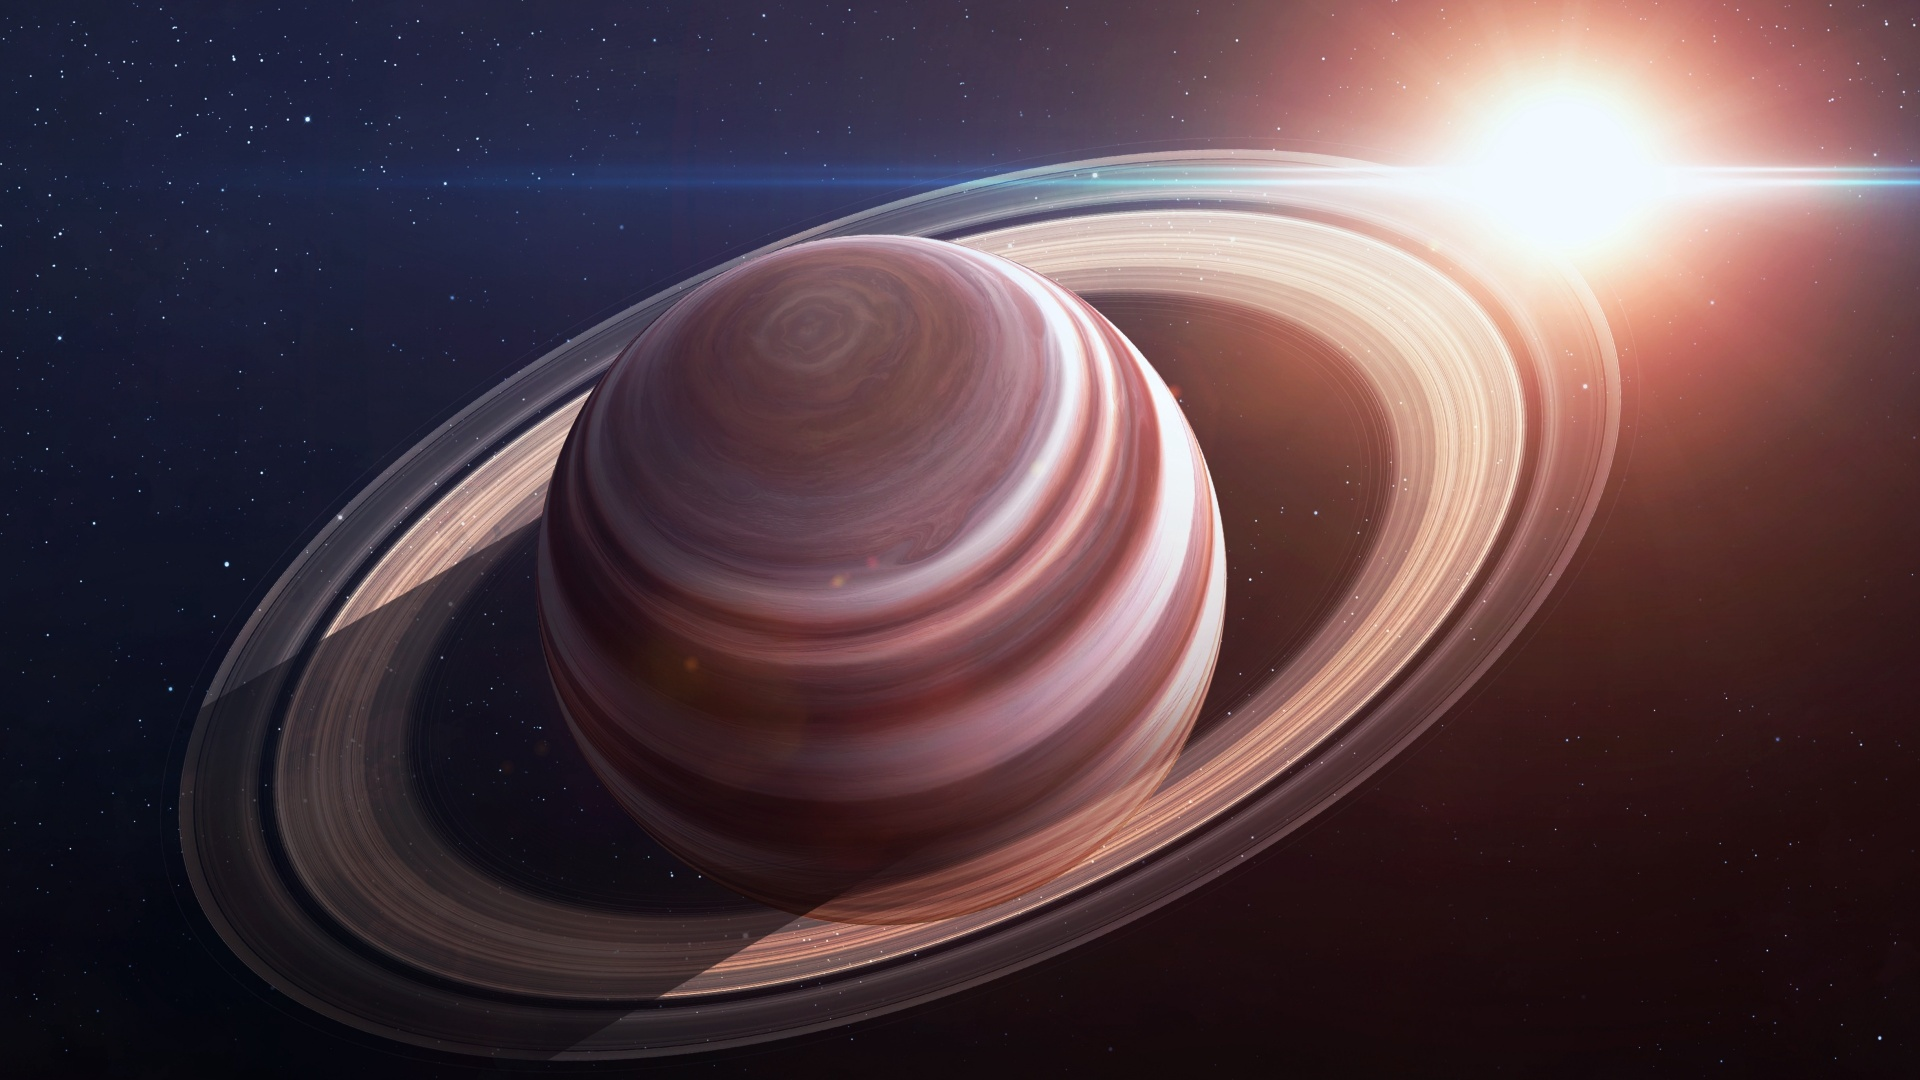 planet saturn rings - photo #6